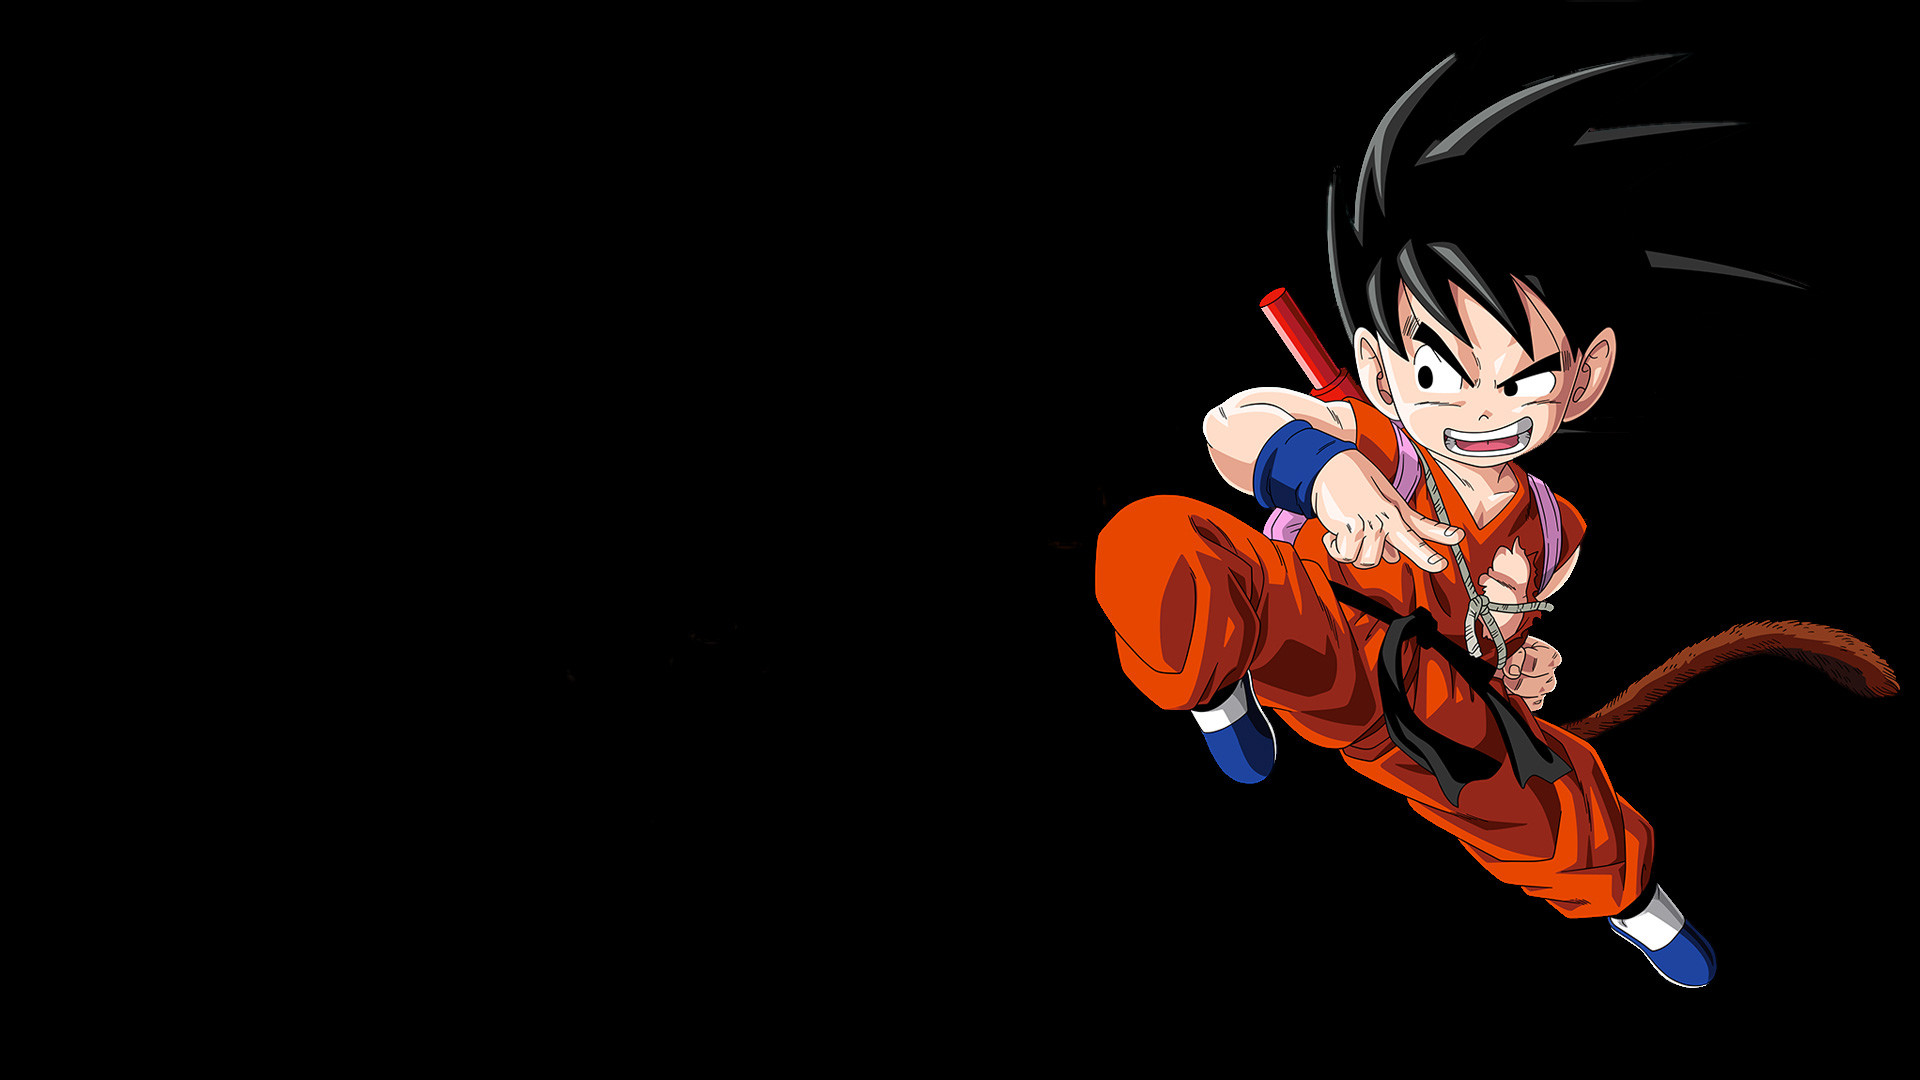 Dragon Ball Z Hd Wallpaper For Android